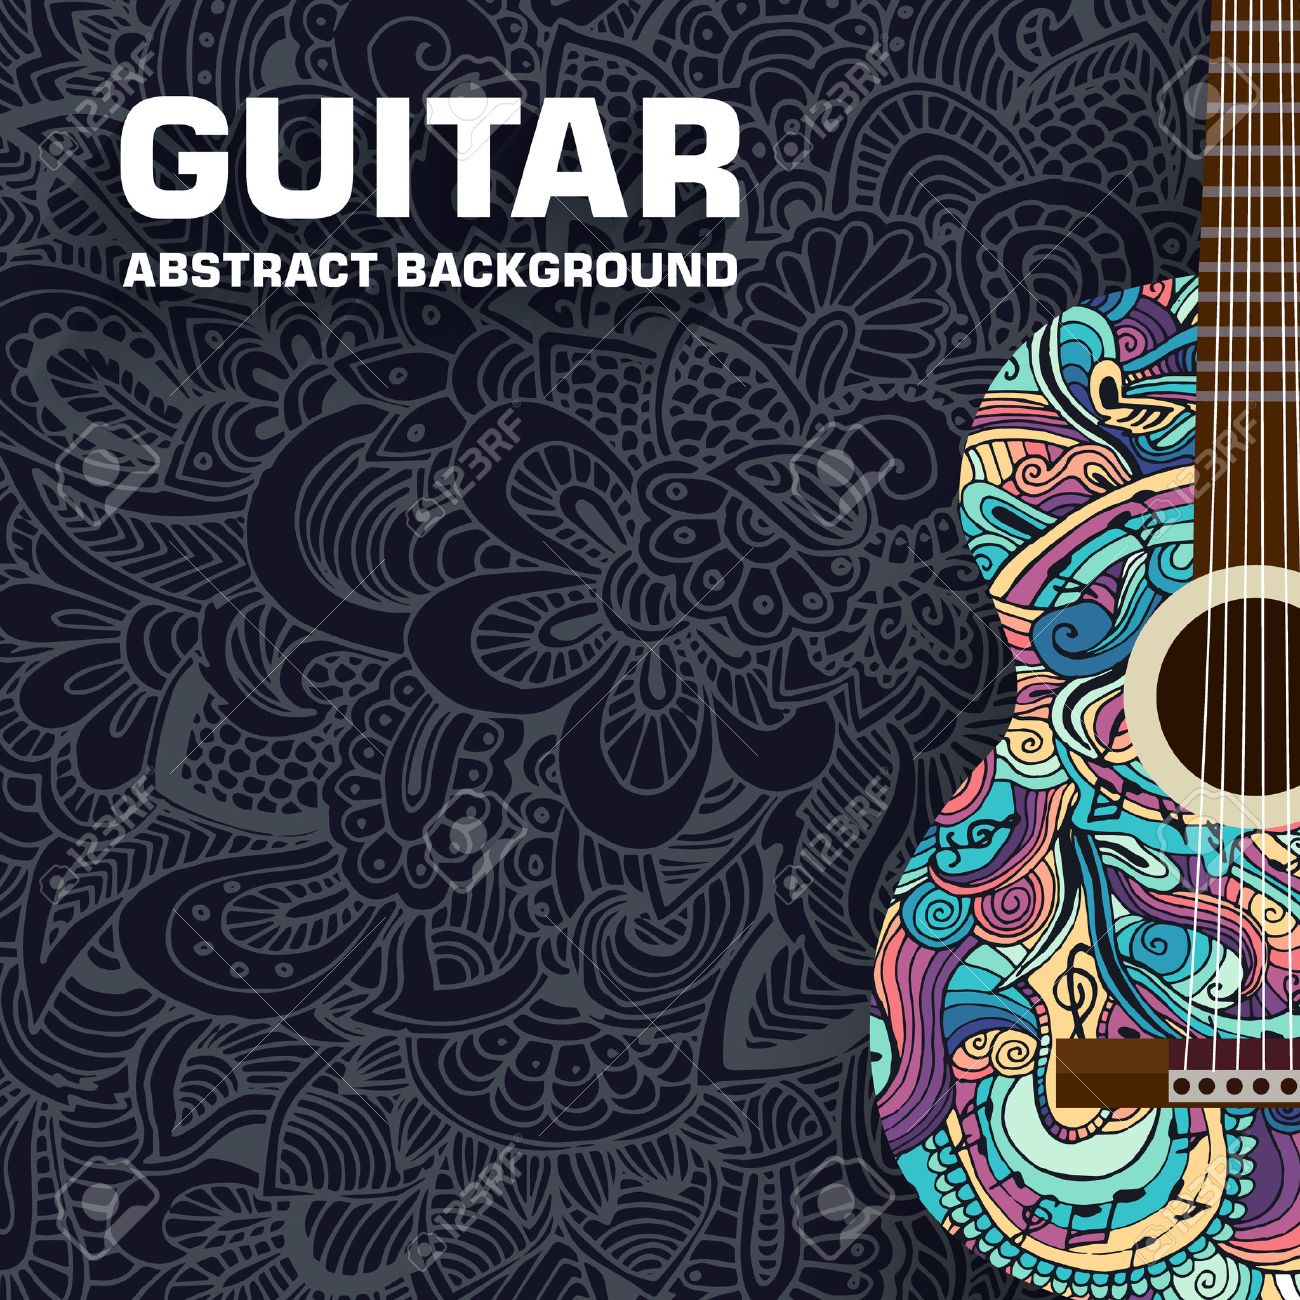 Abstract retro music guitar on the background of the ornament. Vector illustration concept design - 34278871